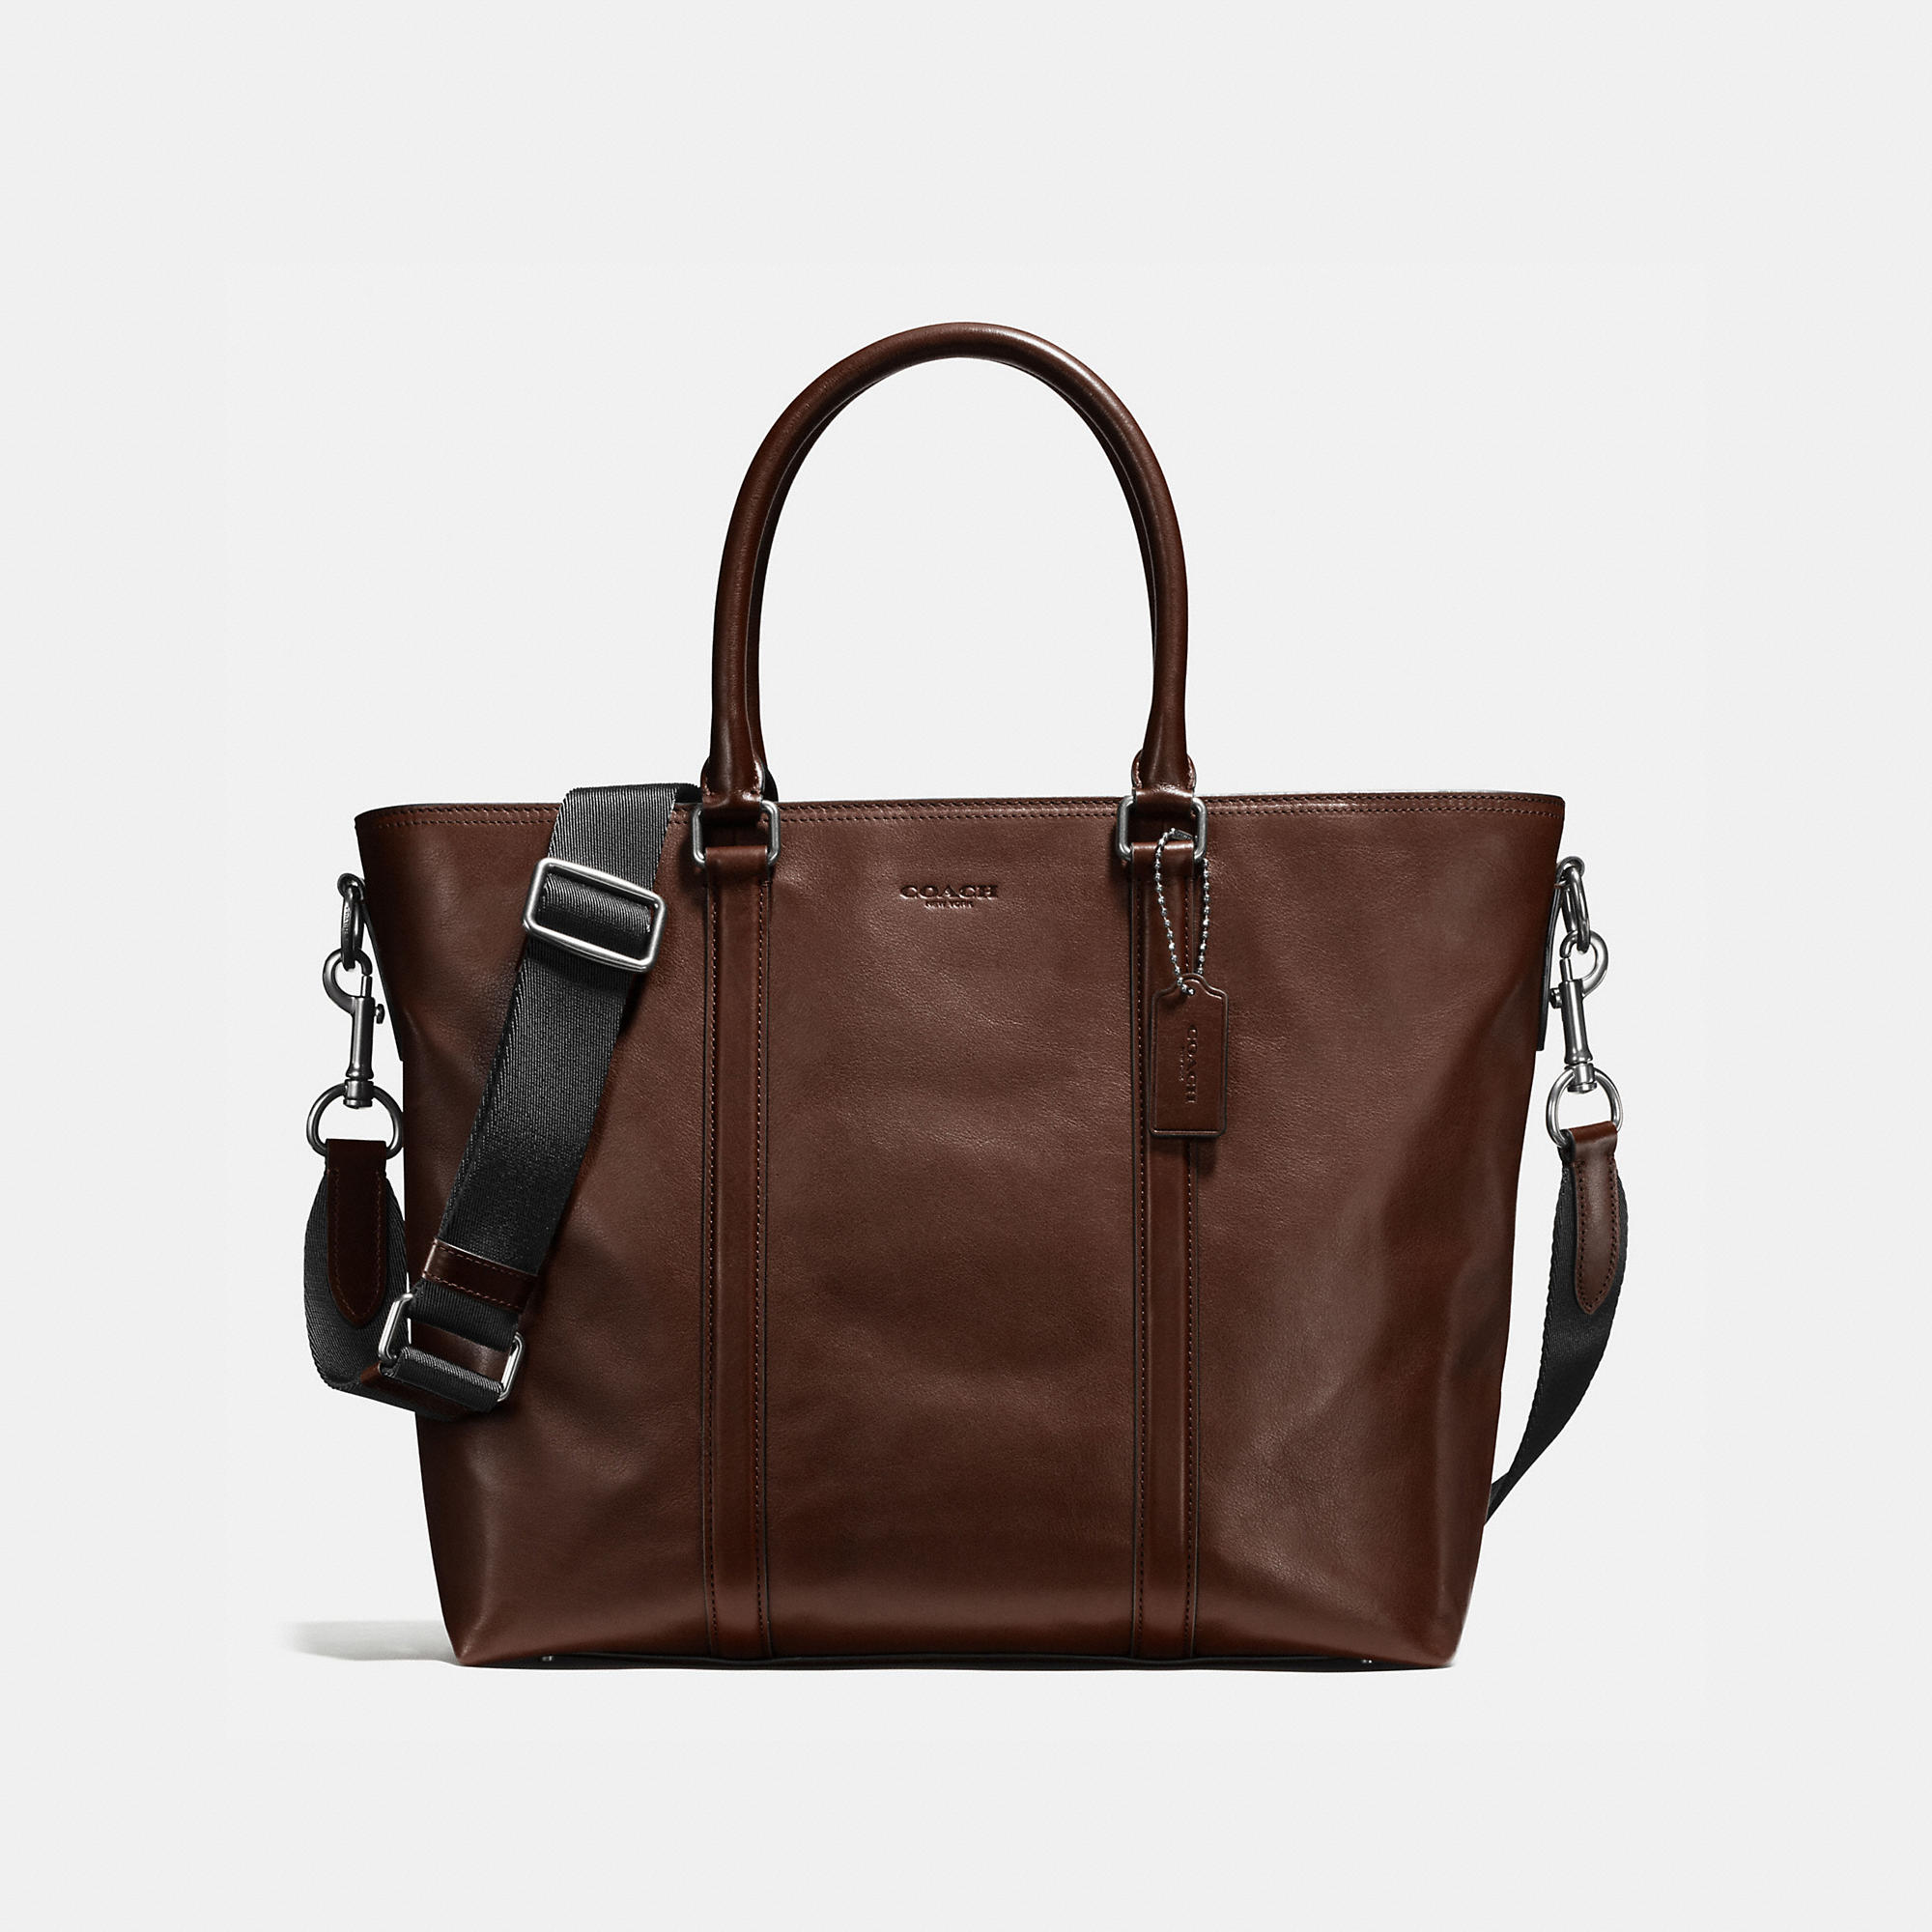 Coach Metropolitan Tote In Sport Calf Leather